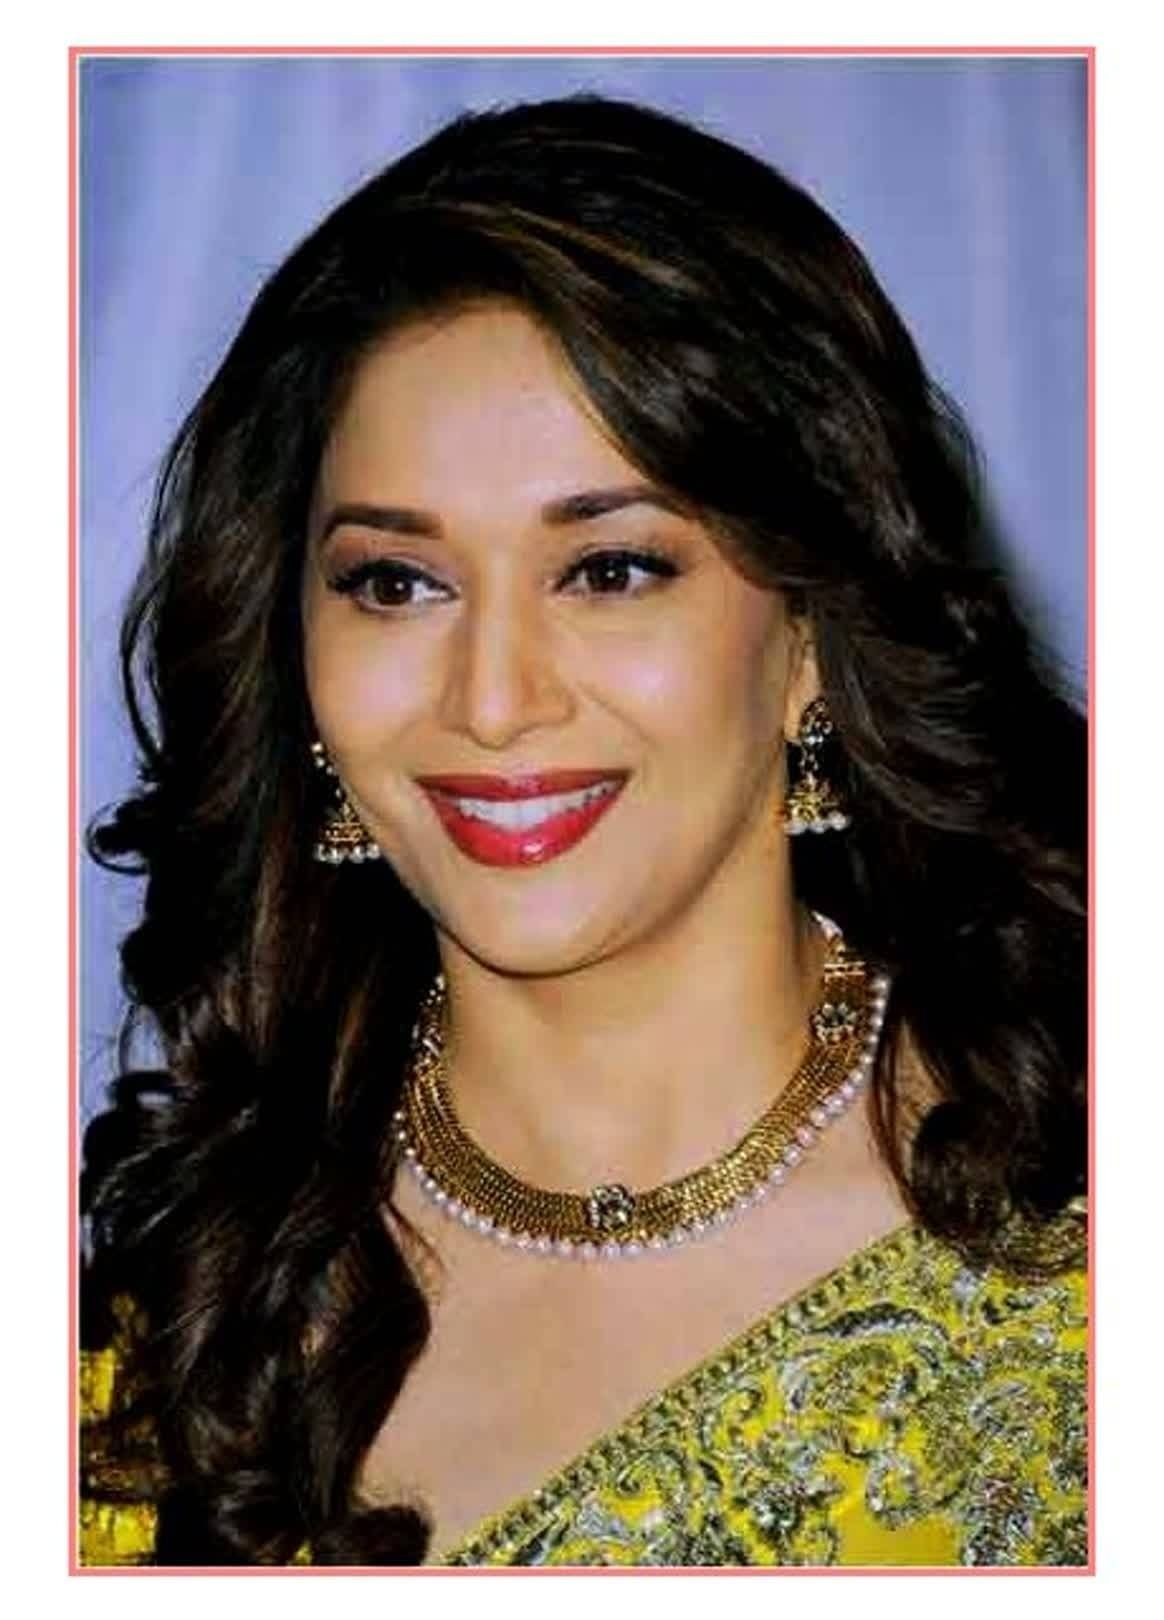 Pin By Shradha Borkute On Wedding Looks In 2020 Curly Hair Styles Hair Styles Hairstyles For Round Faces